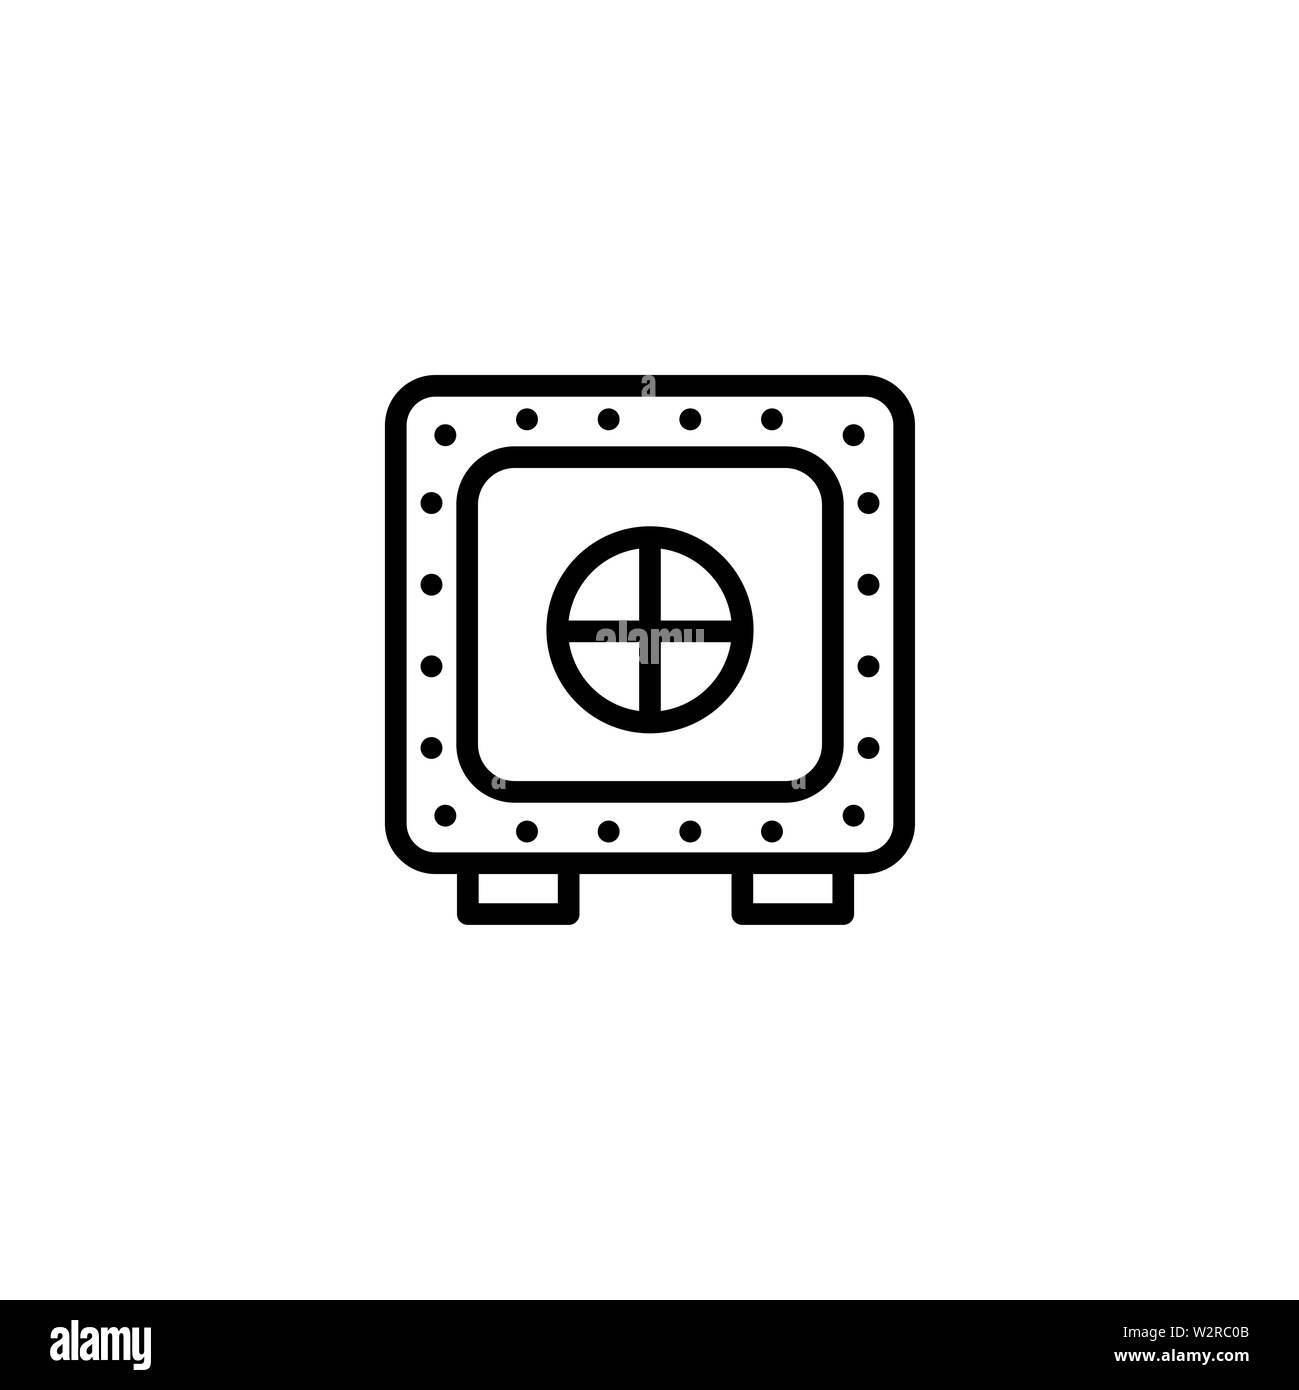 Vault Line Icon In Flat Style Vector For Apps, UI, Websites. Black Icon Vector Illustration. - Stock Image